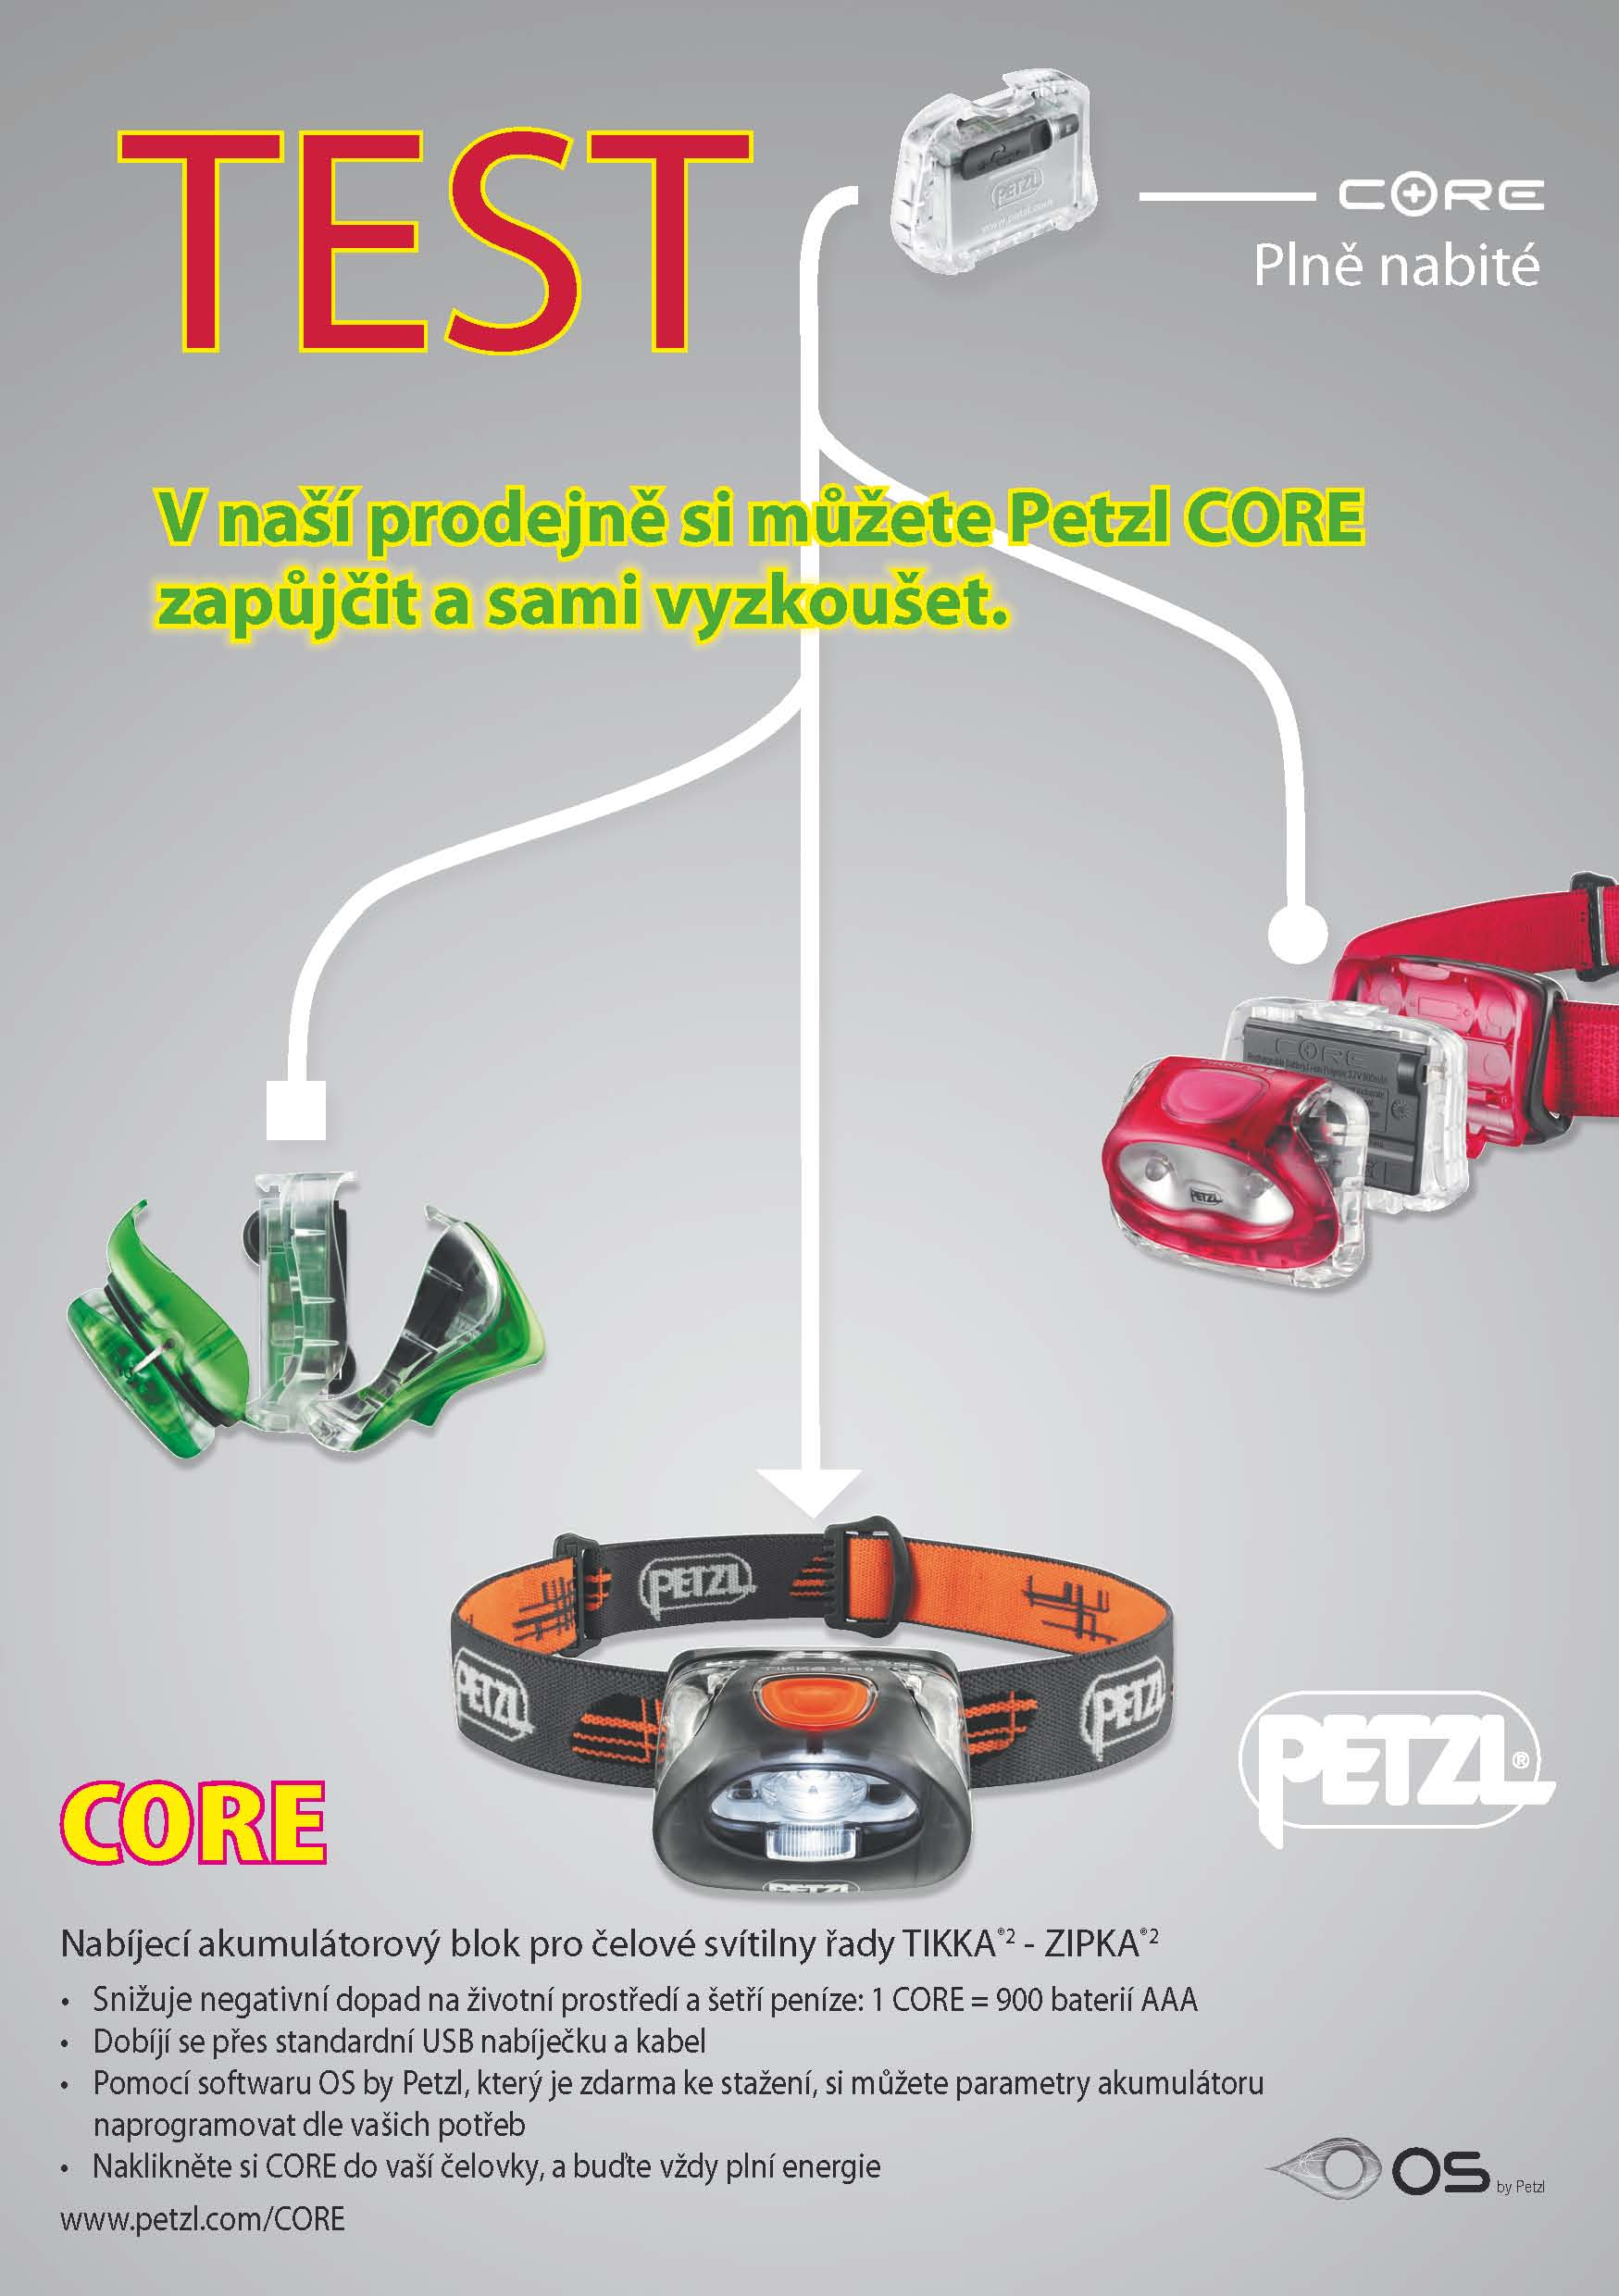 Test Petzl CORE